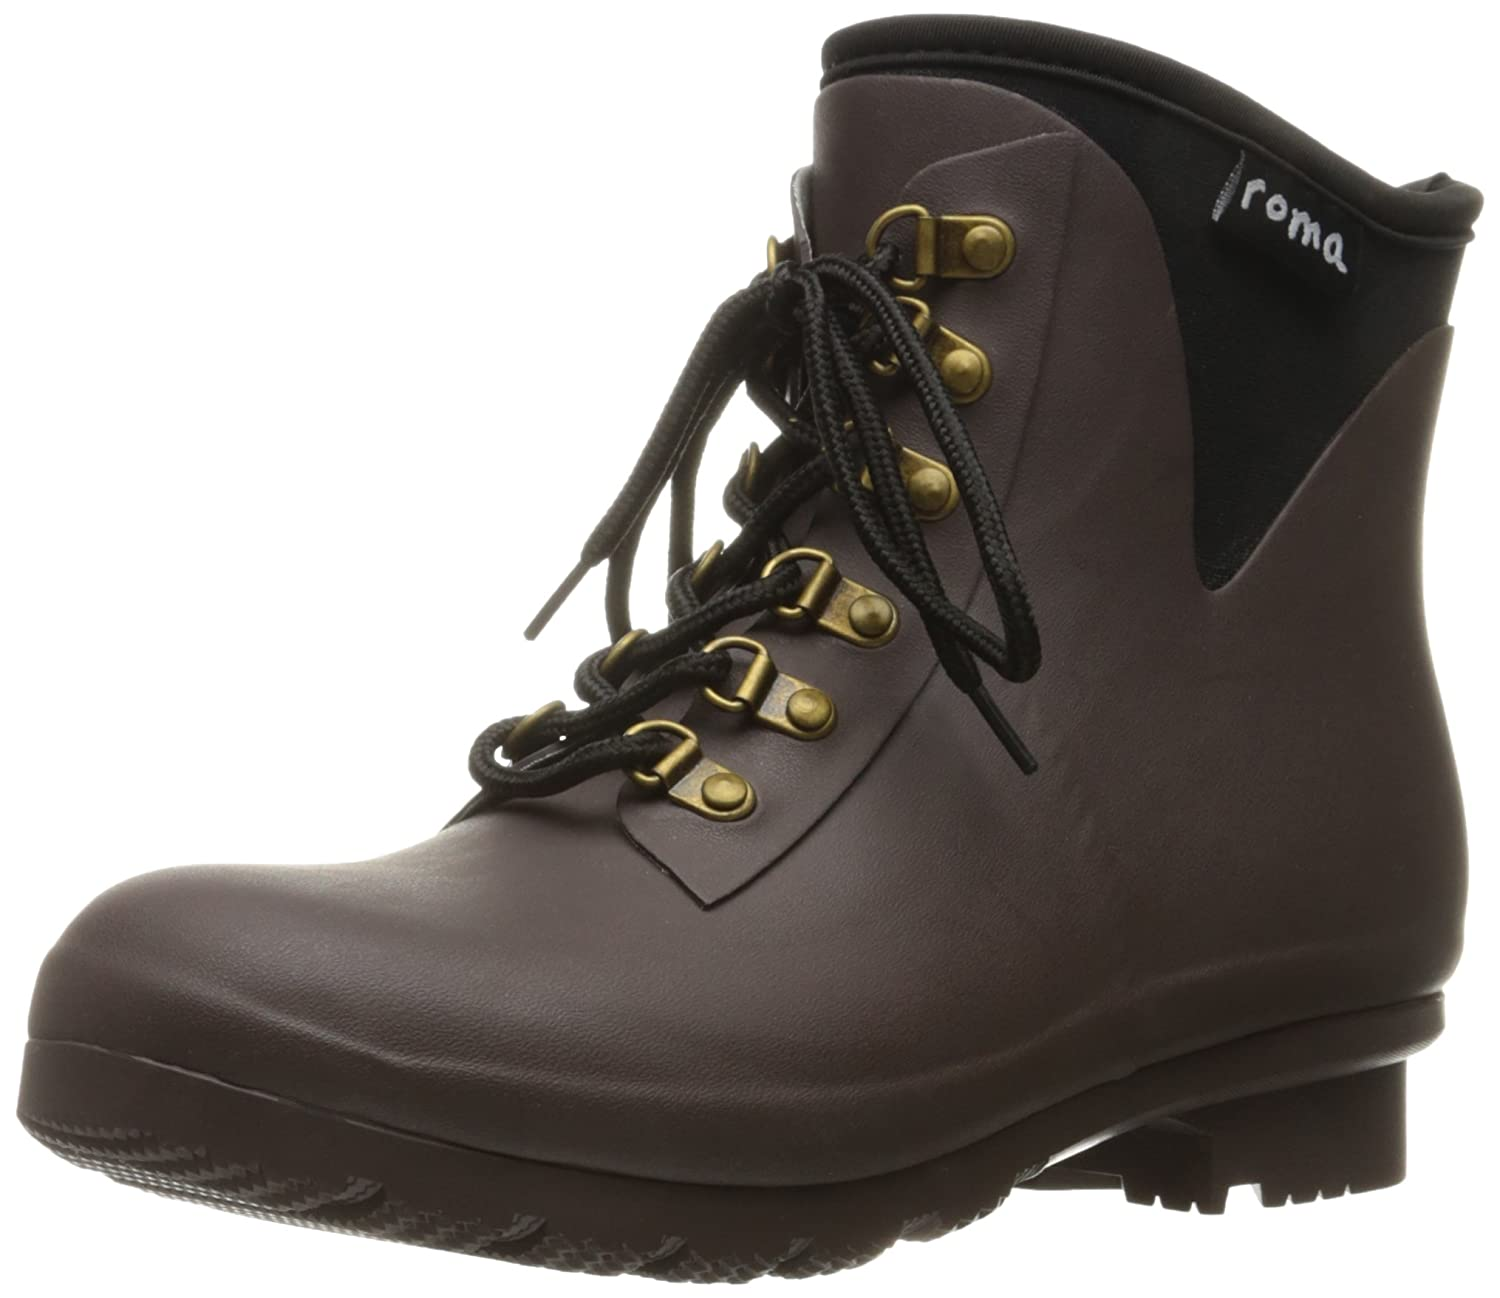 Roma Boots Women's Evol Lace-up Ankle Rain Boots B01L2WO99M 8 B(M) US|Brown